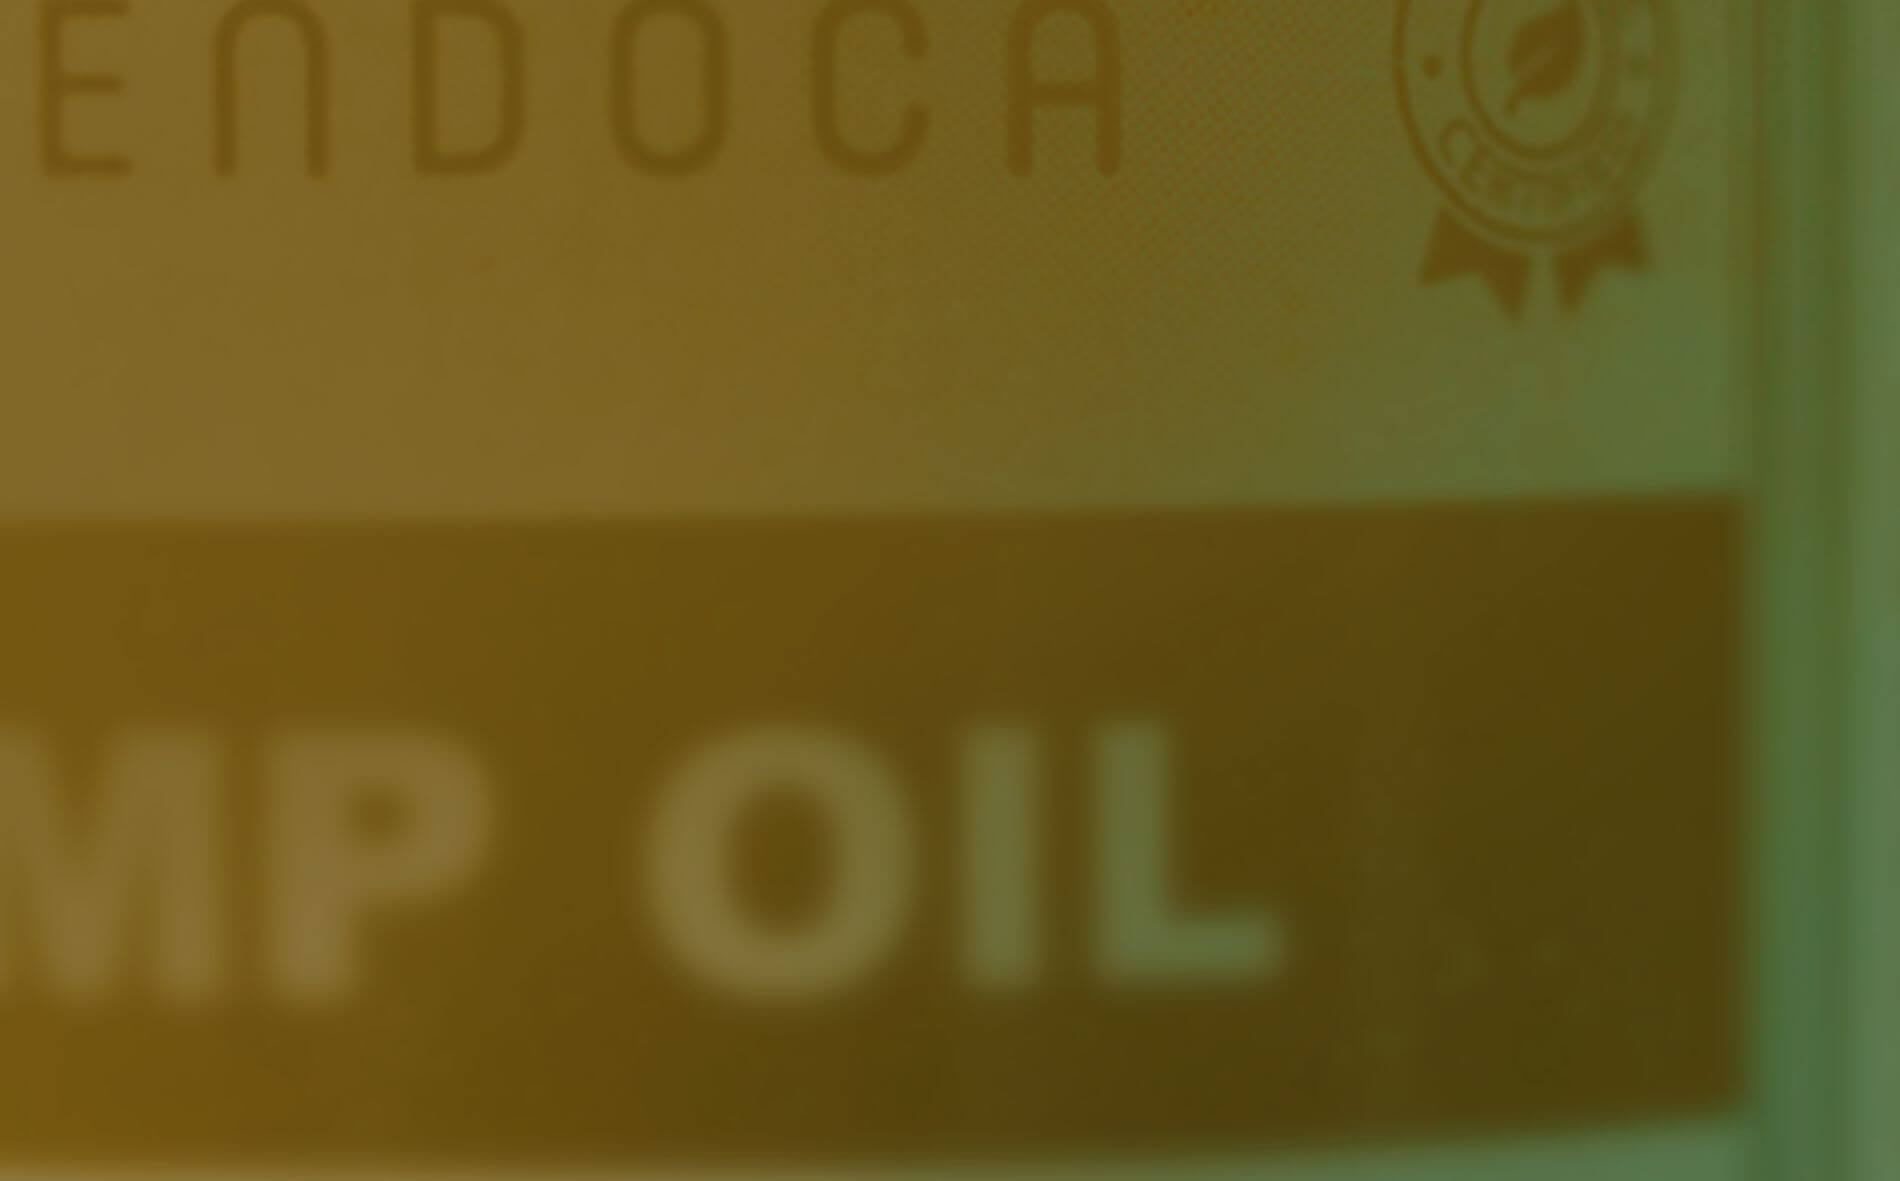 hemp oil close-up